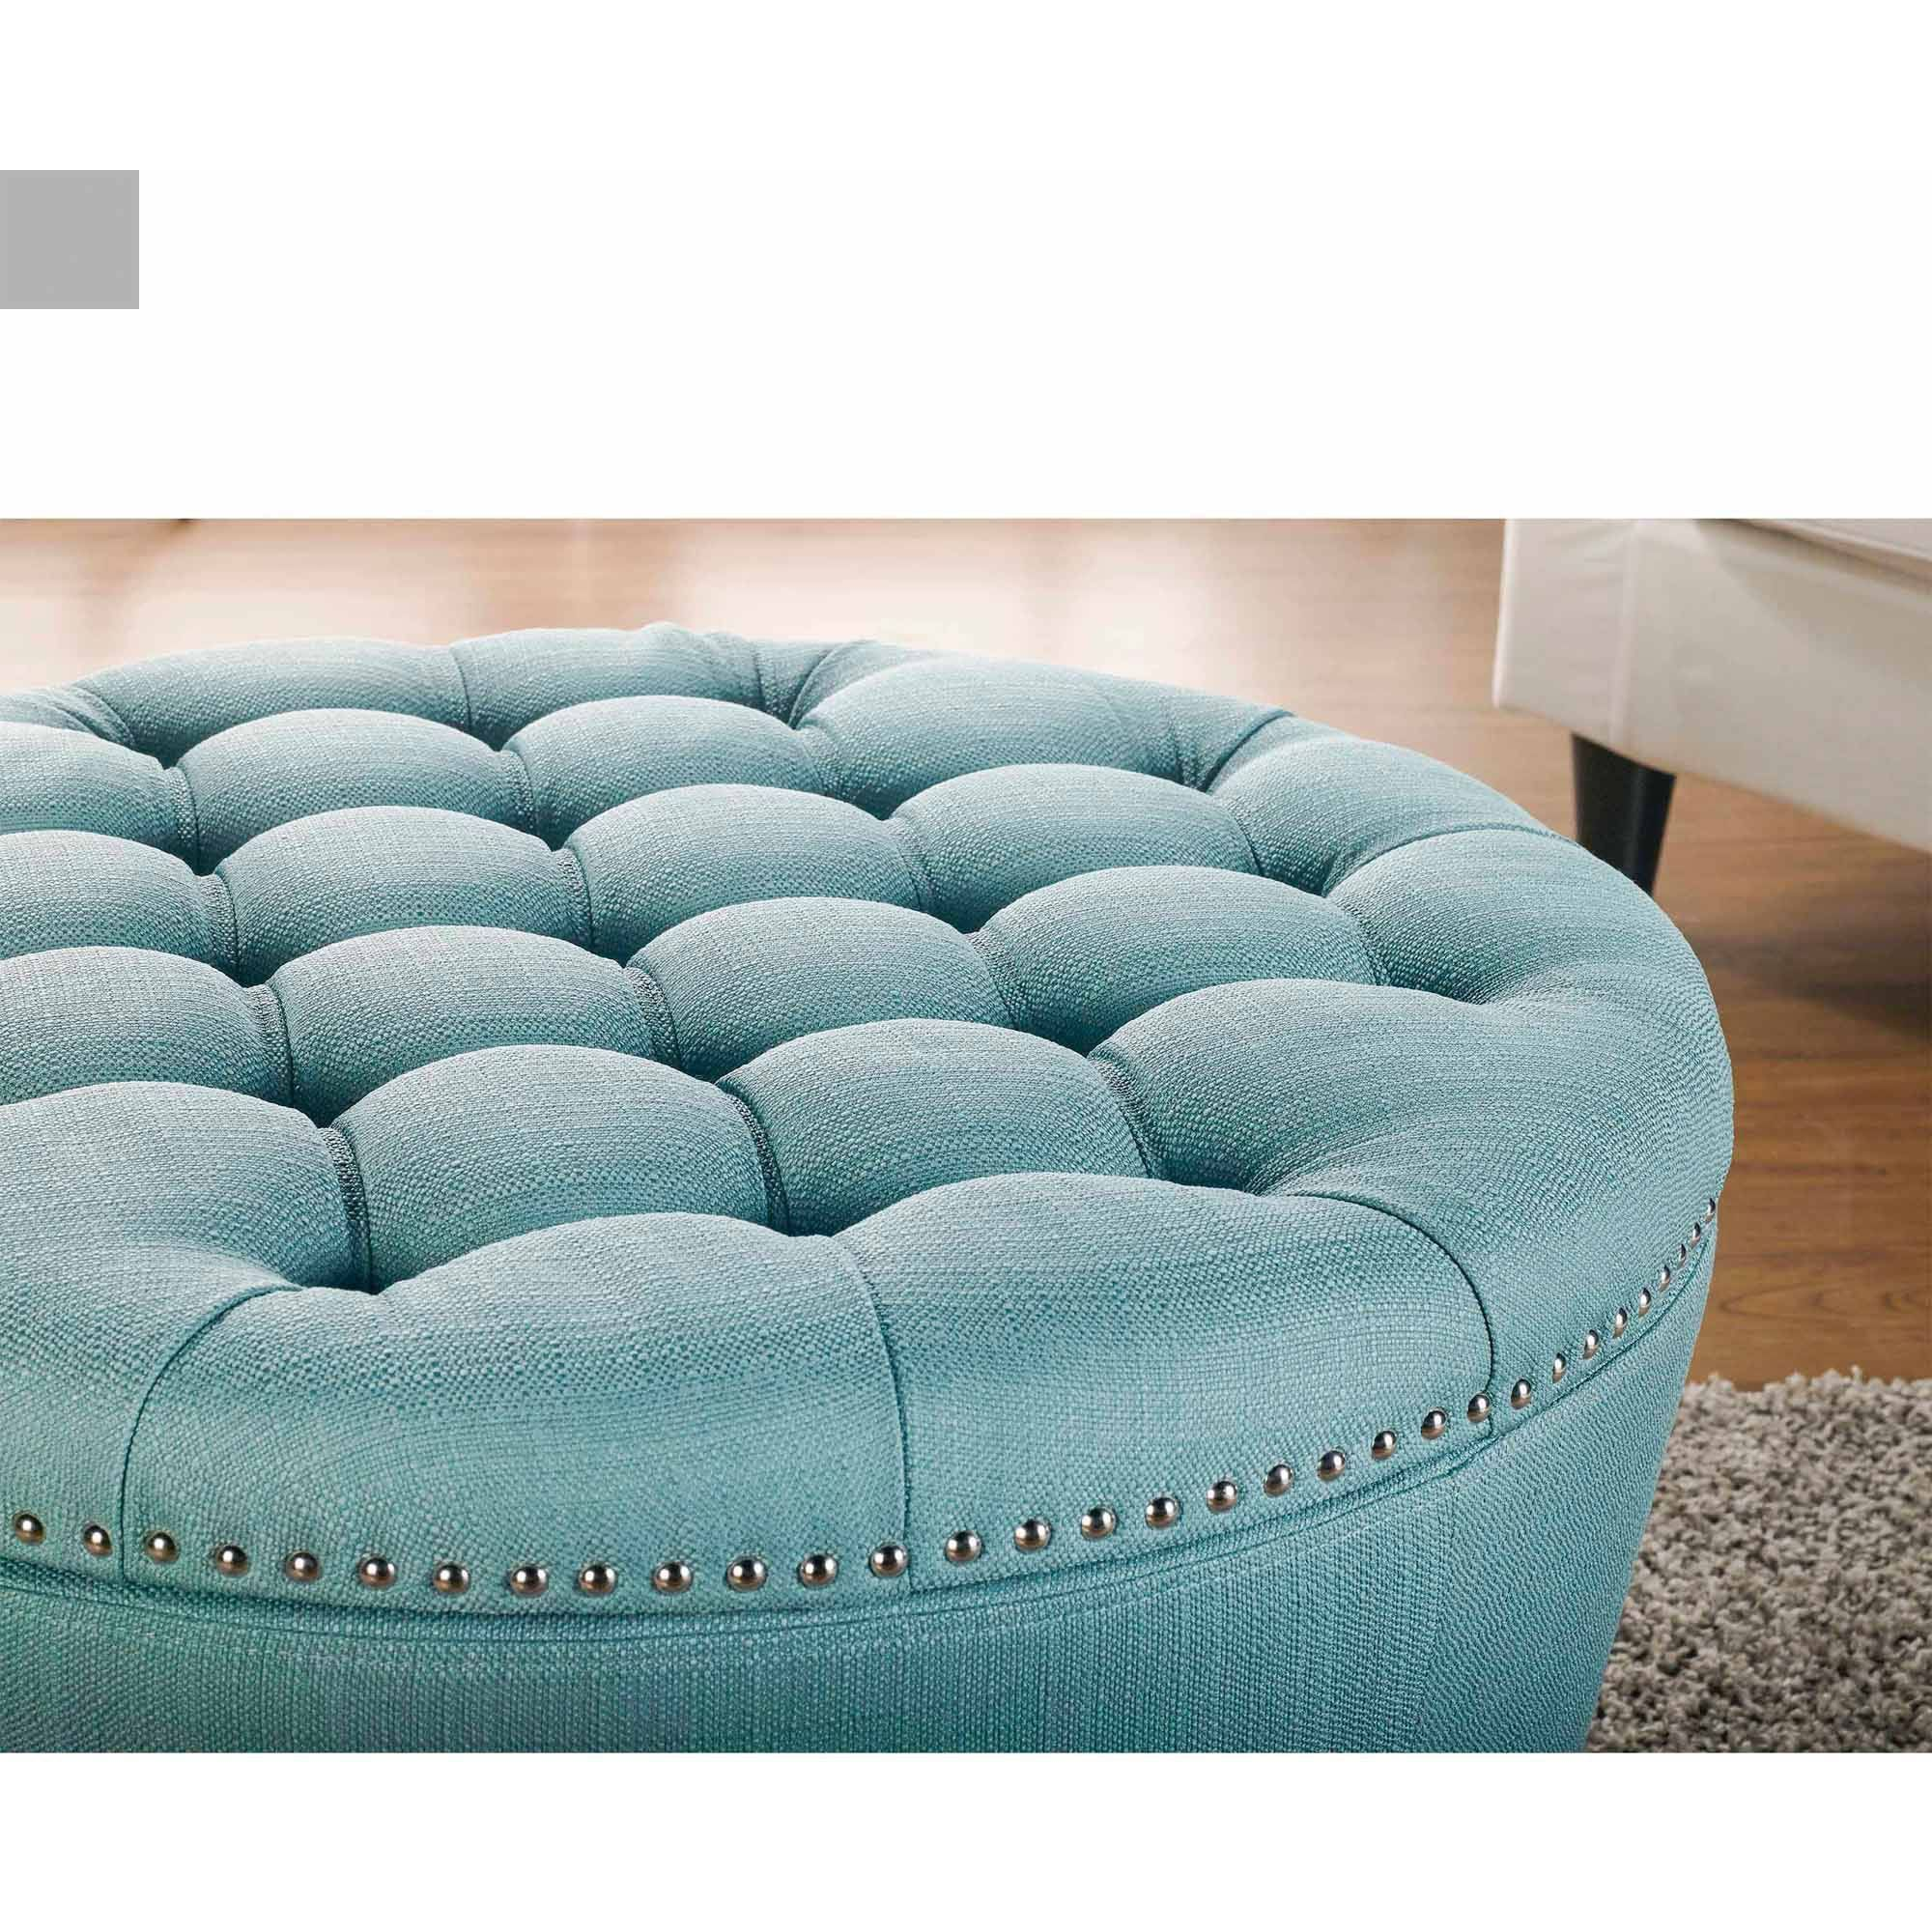 Terrific better homes and gardens round tufted storage ottoman with nailheads also light blue round ottoman also blue velvet ottoman